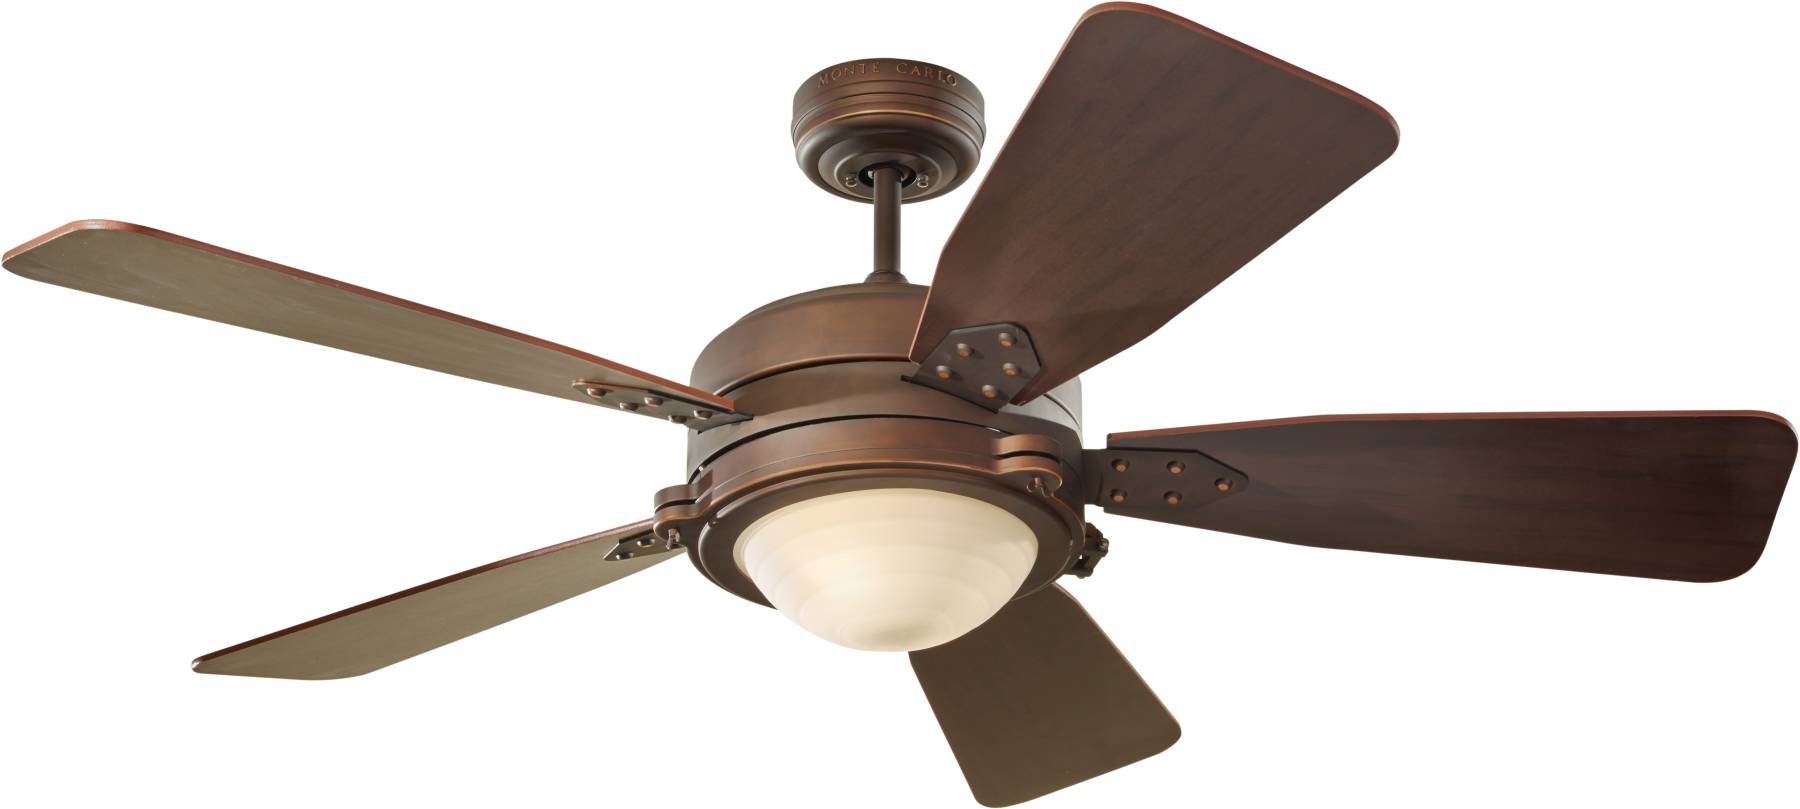 battery interior powered of fashionable shake bay no hampton awesome fan outdoor ceiling